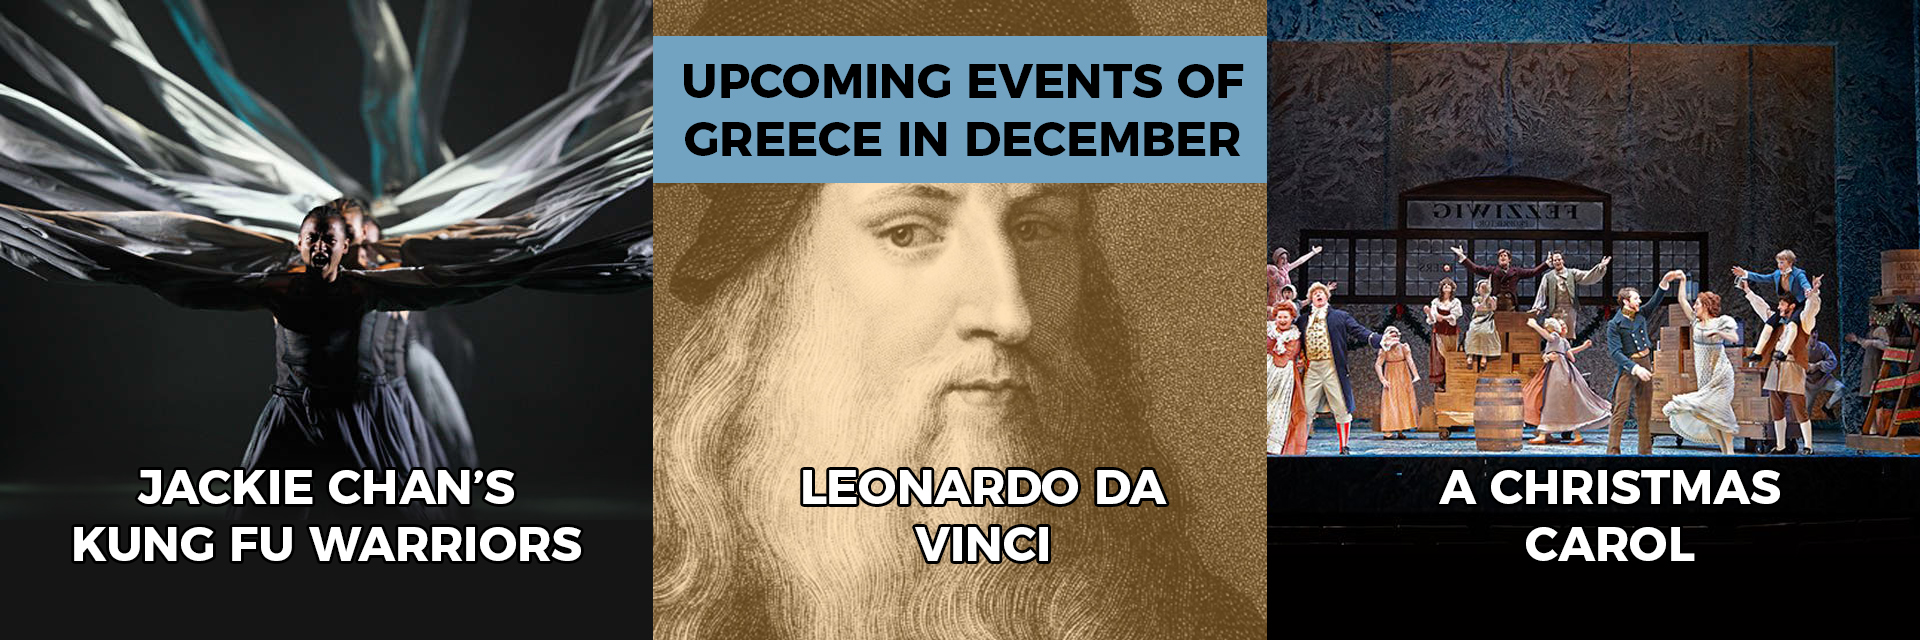 events-of-greece